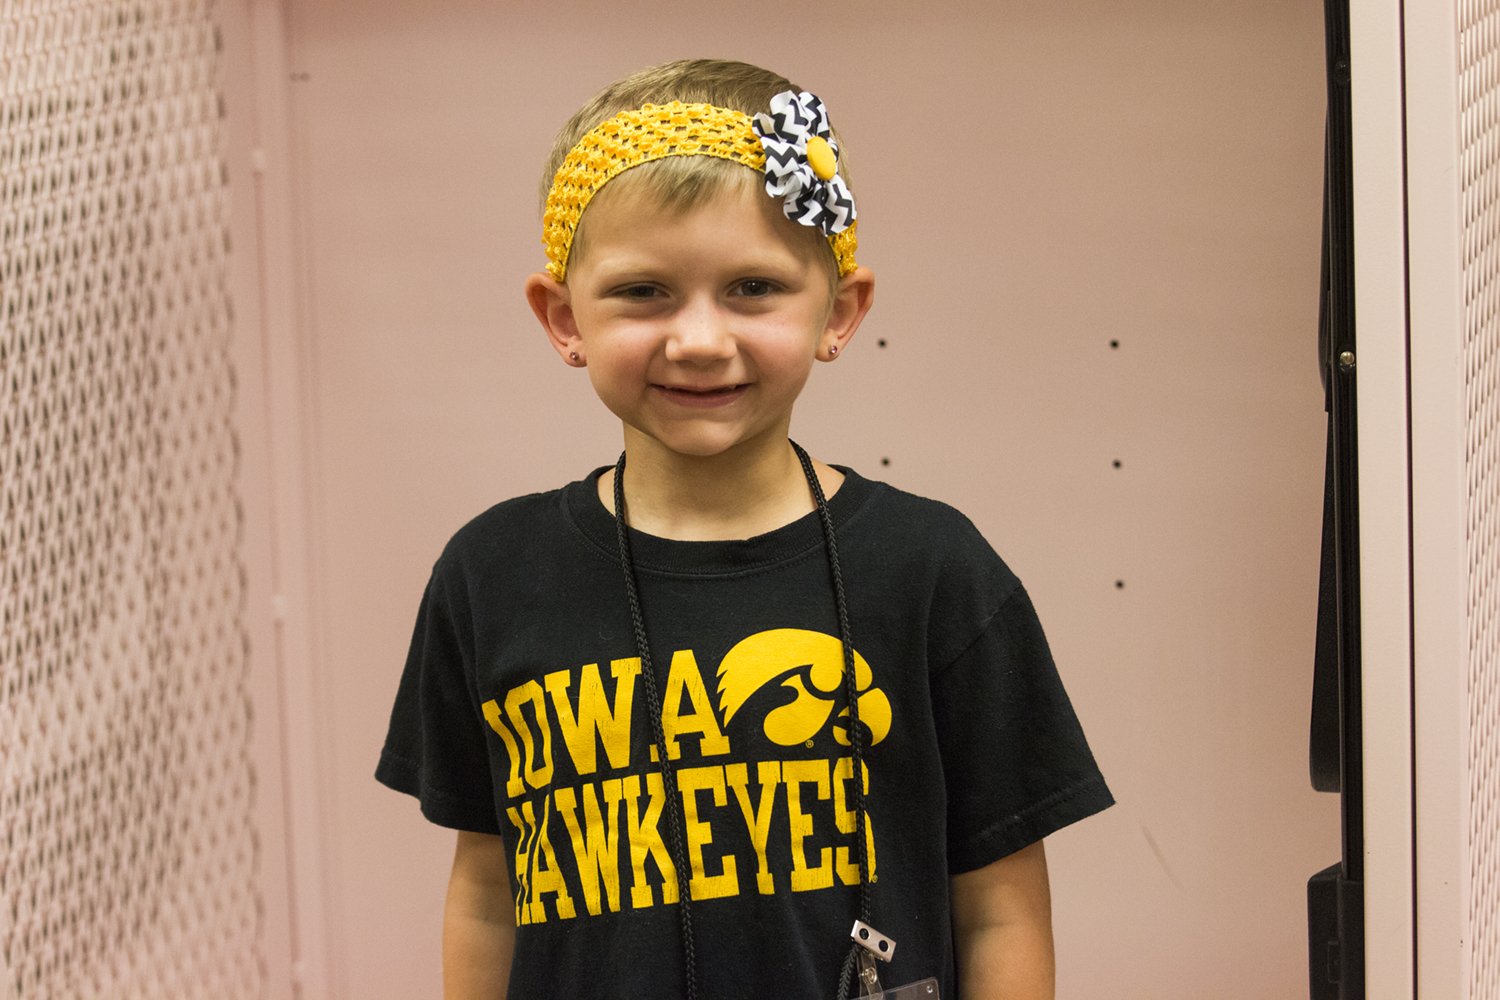 Kid Captain Harper Stribe smiles for a portrait during Iowa football Kid's Day at Kinnick Stadium on Saturday, Aug. 11, 2018. The 2018 Kid Captains met the Iowa football team and participated in a behind-the-scenes tour of Kinnick Stadium.